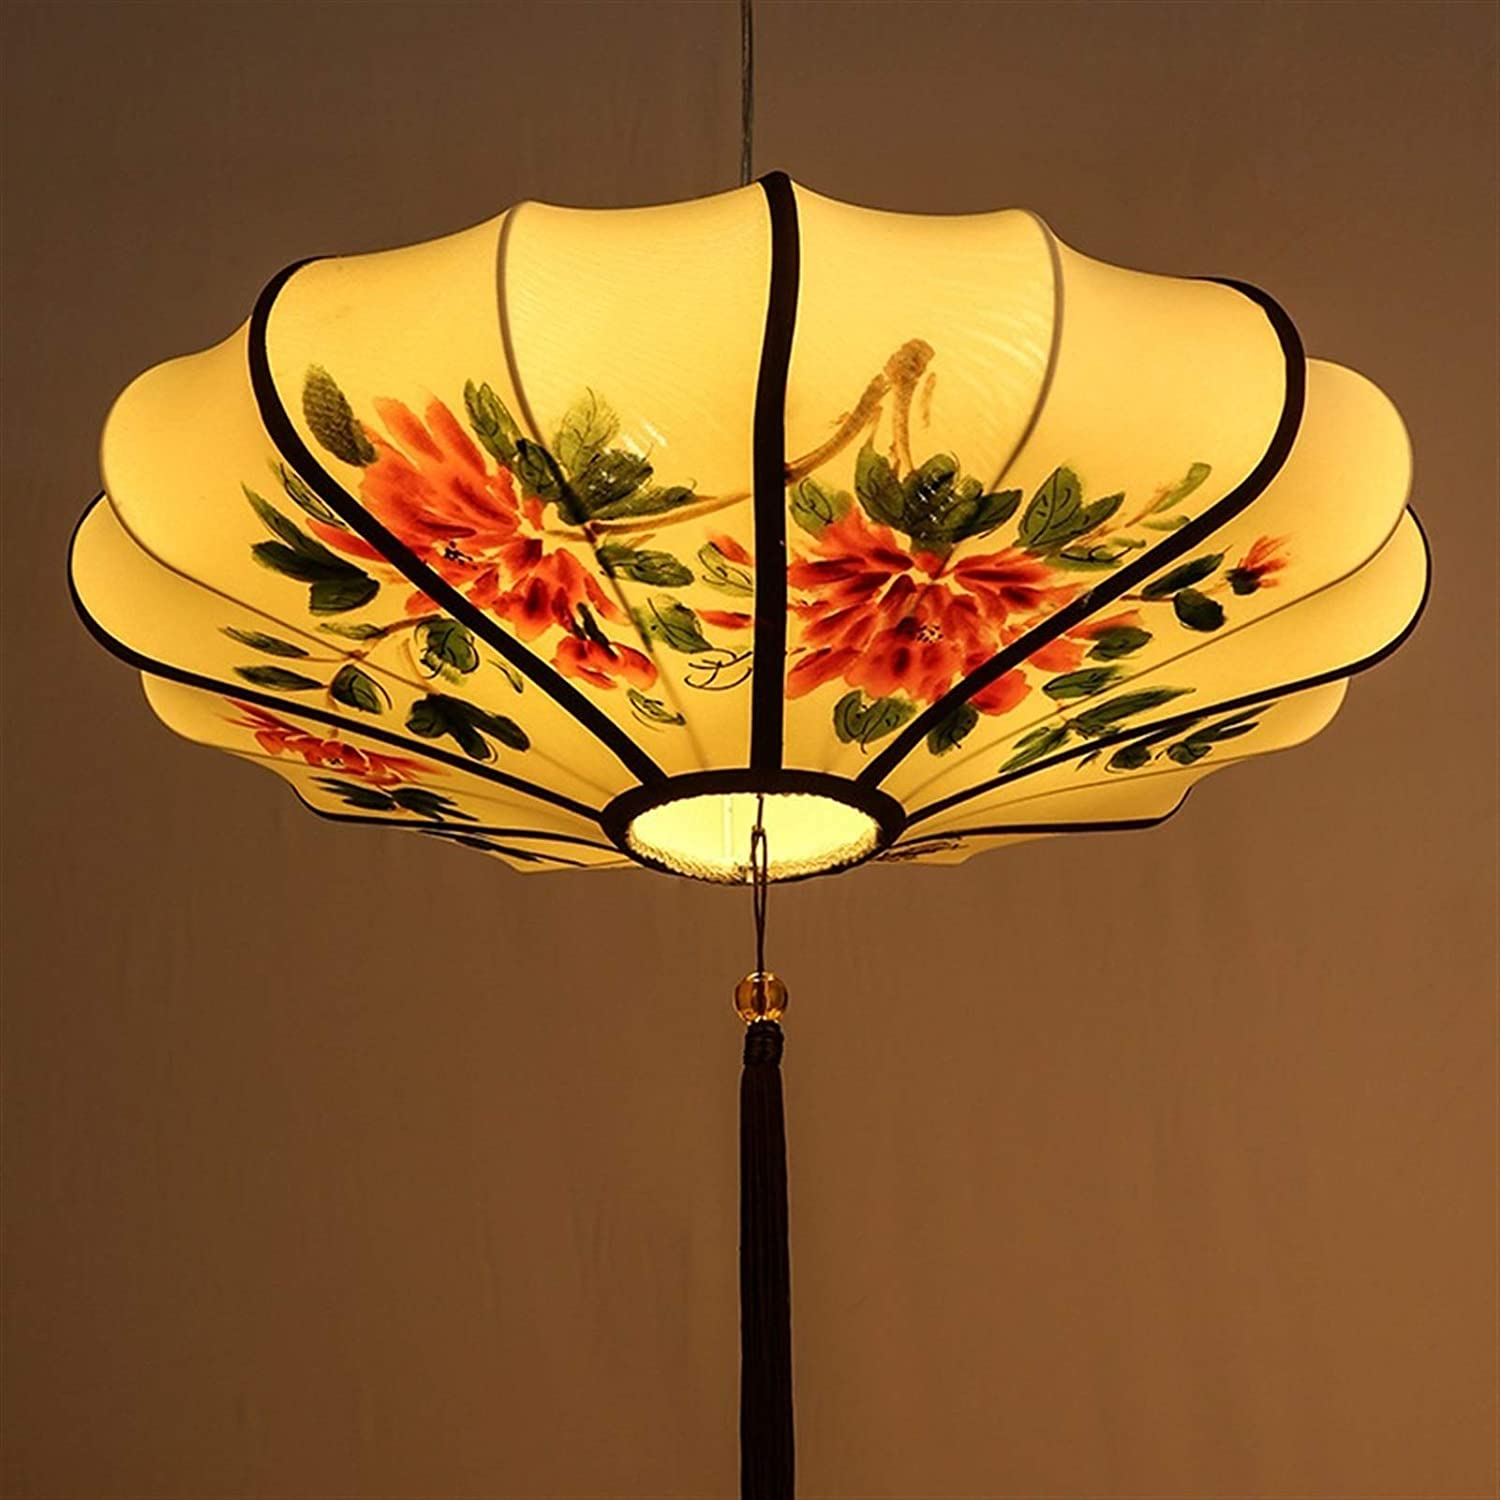 Superior Pendant Light Chandeliers favorite New Led style Chinese Retro Painting r